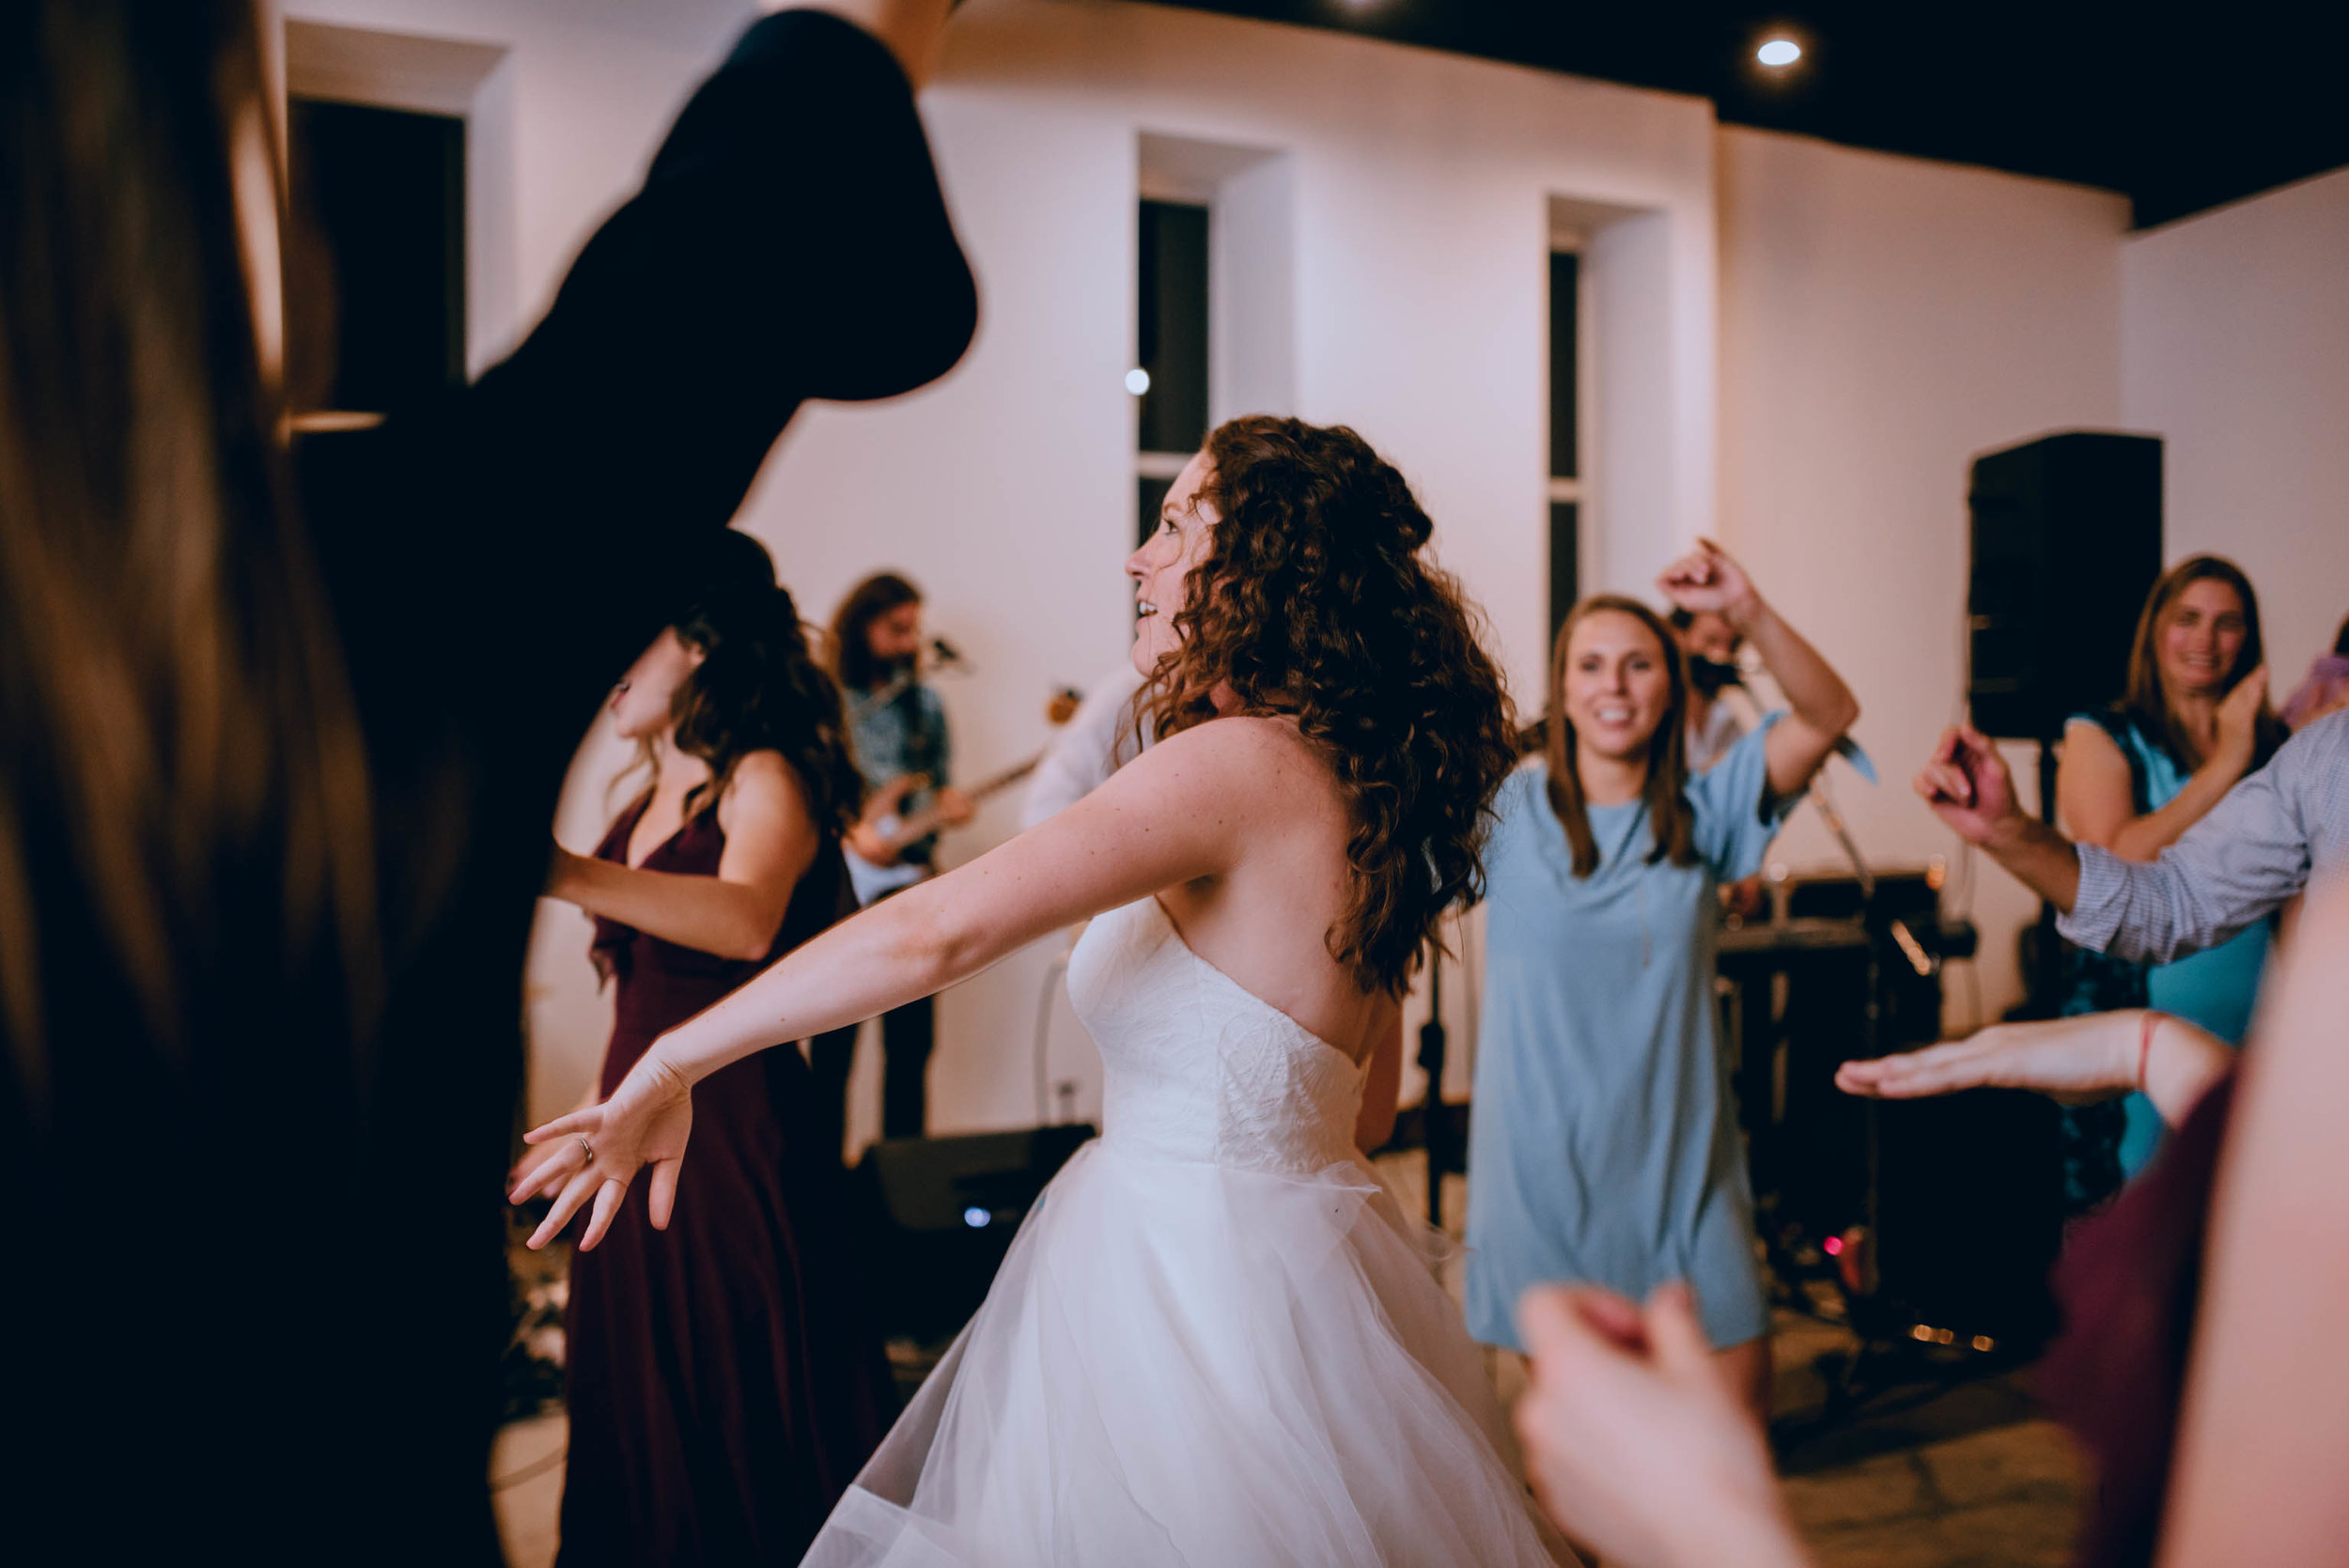 bride dancing with her bridesmaids during wedding reception